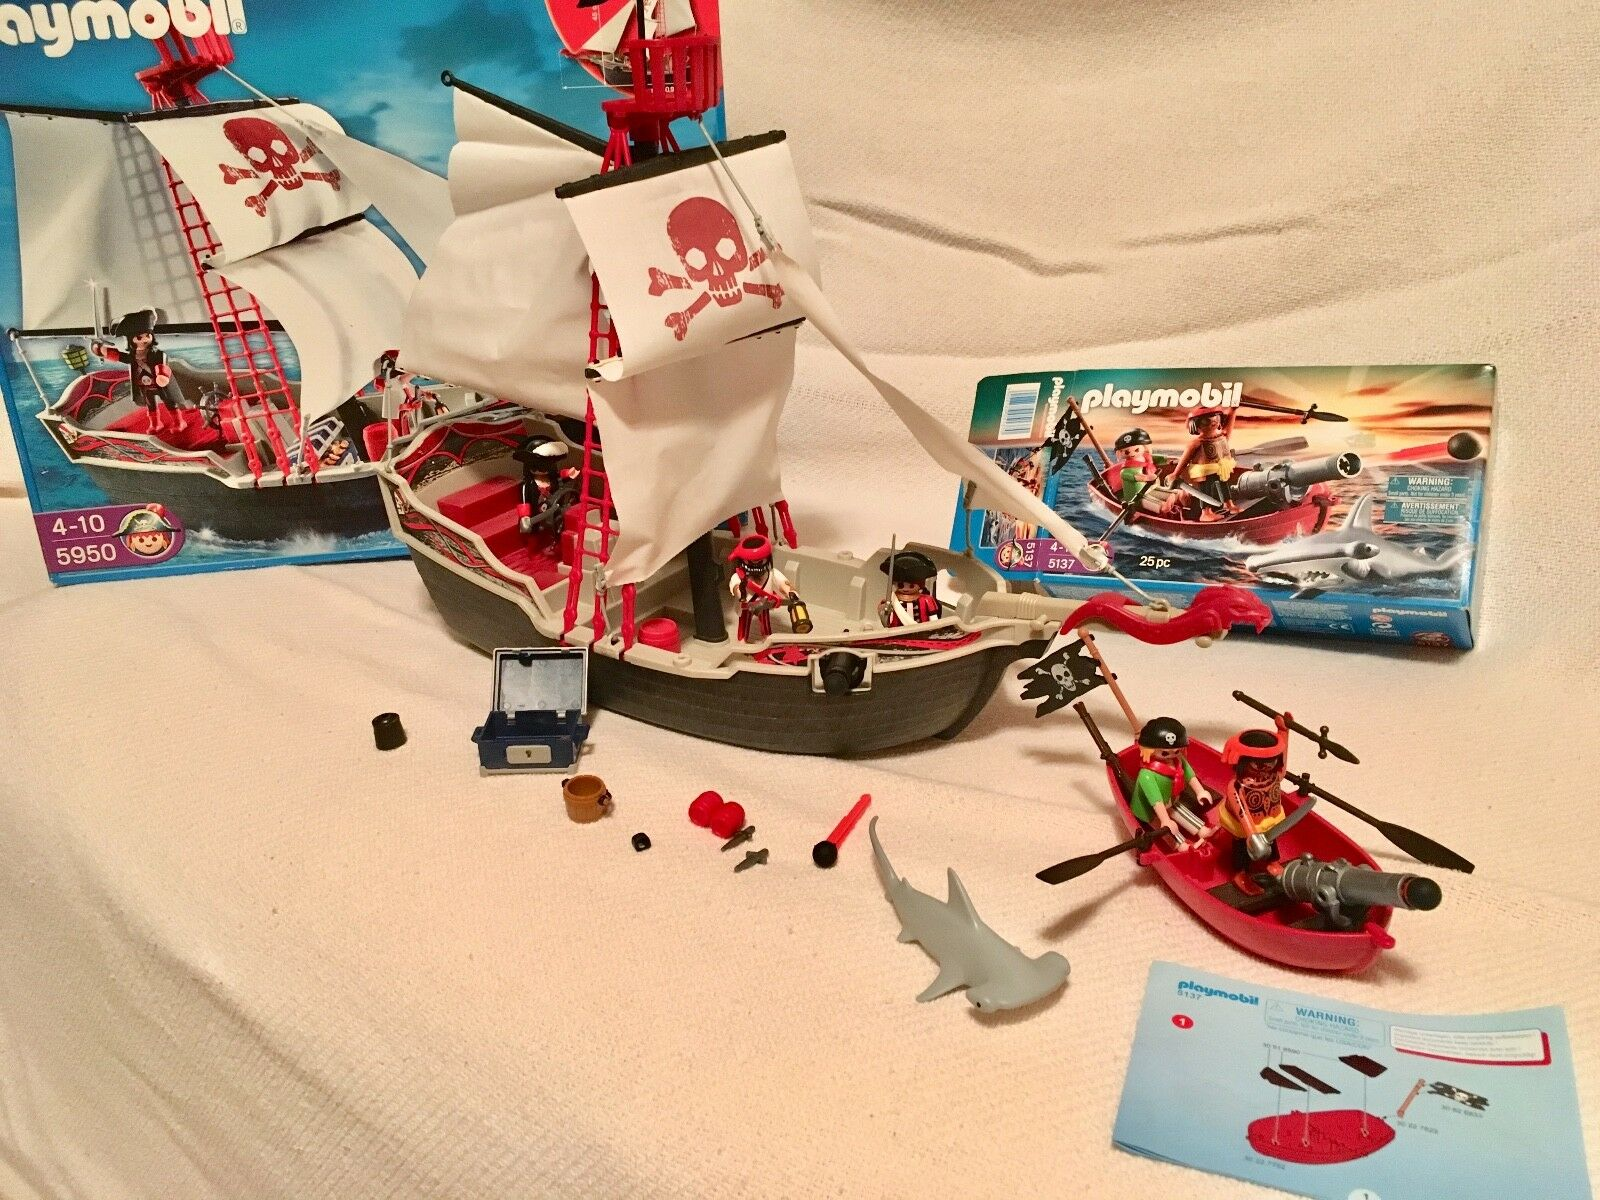 Playmobil Pirate Skull Bones Ship Toy Set 5950 Discontinued w  5137 Boat Extra